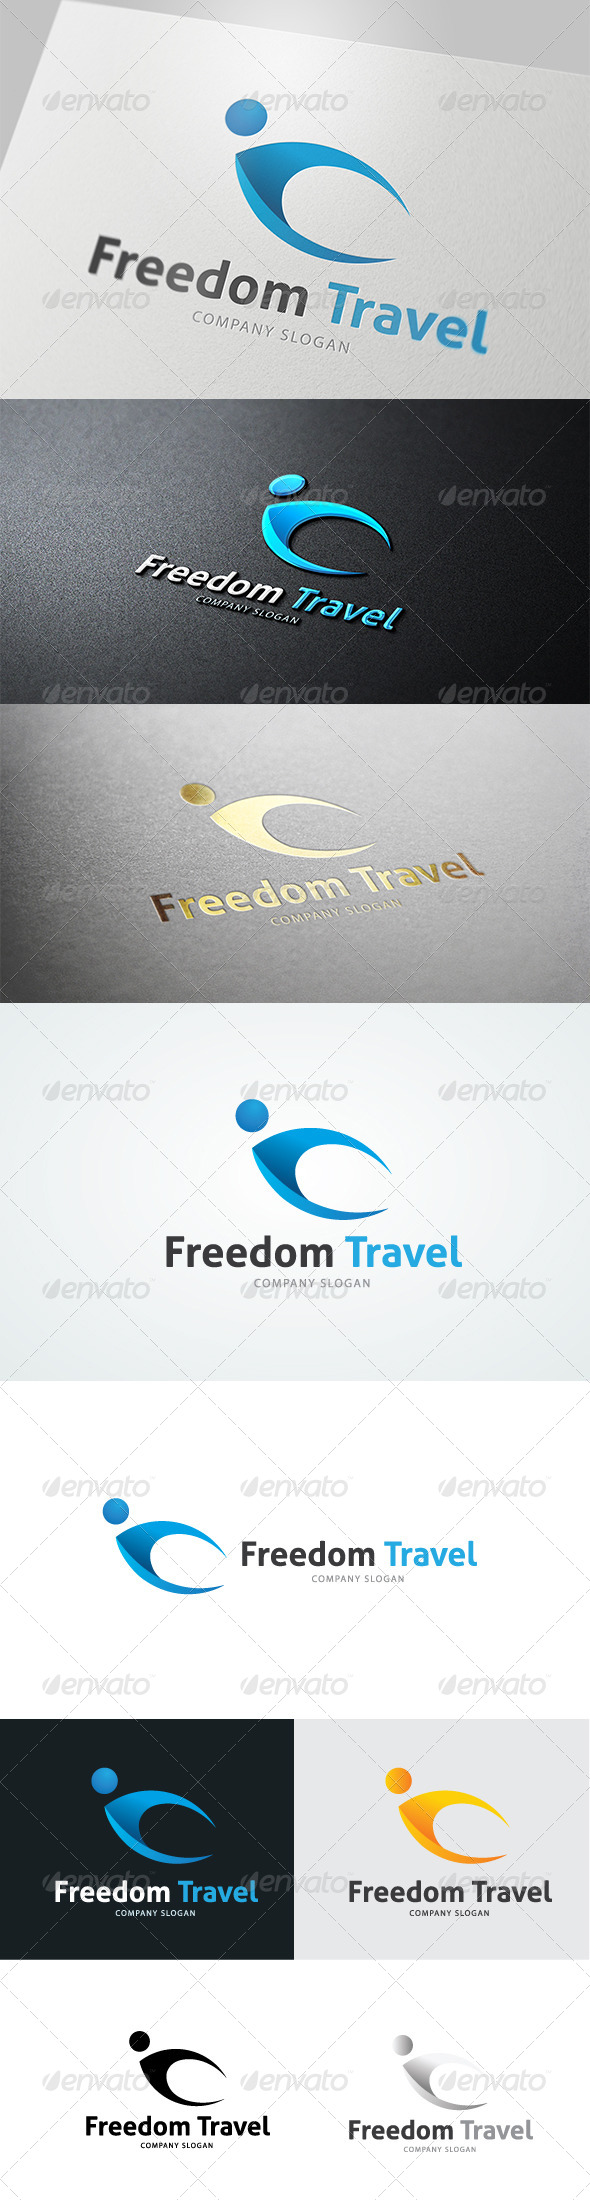 GraphicRiver Freedom Travel 4763962